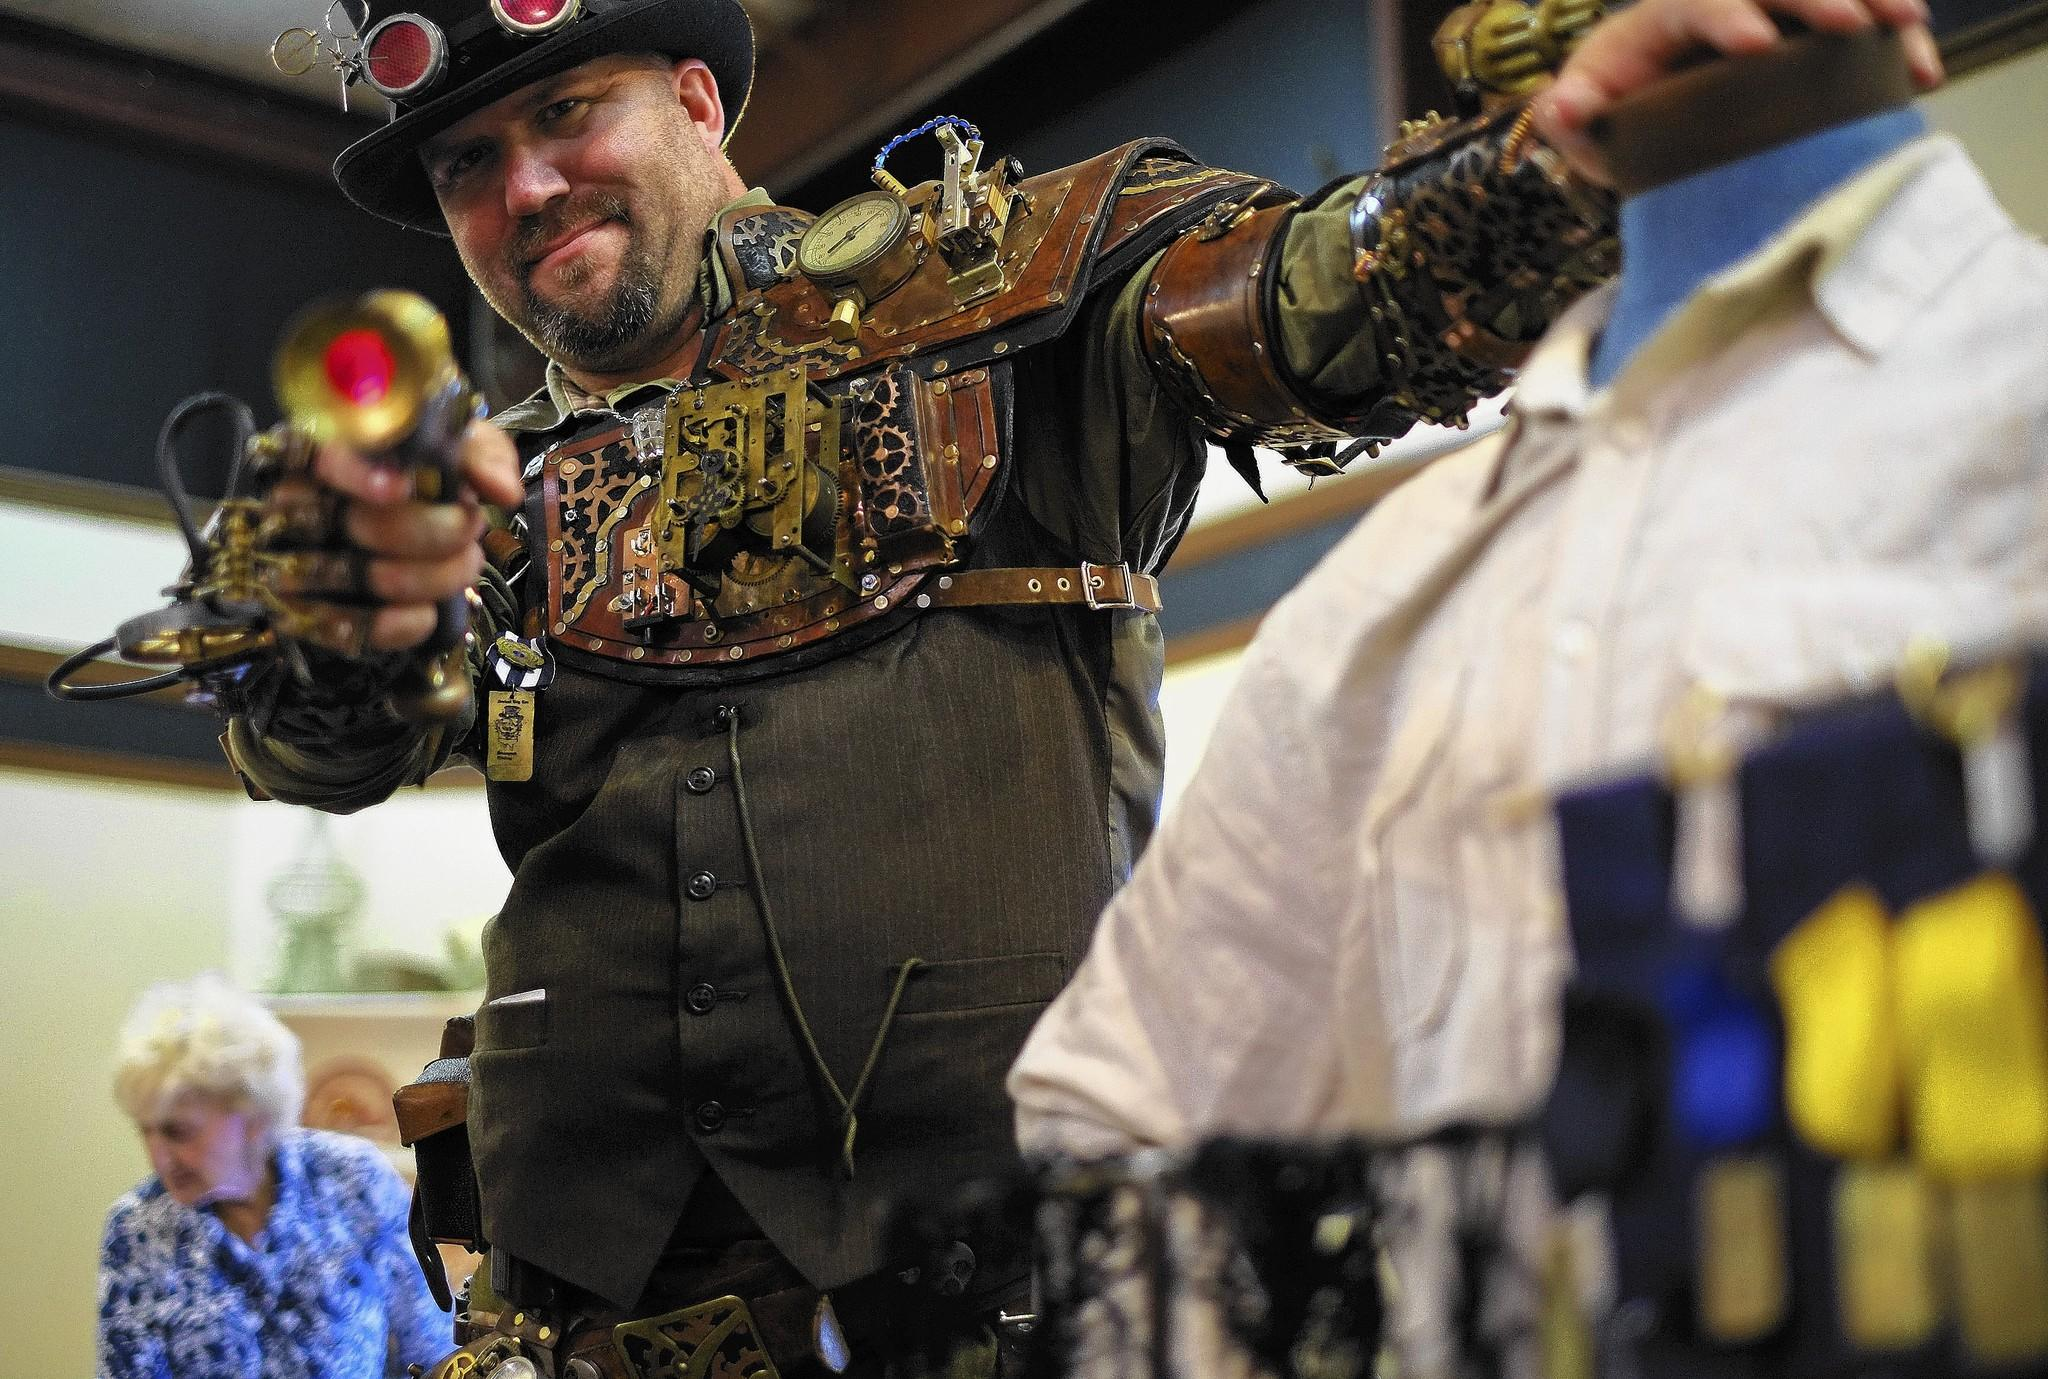 "RJ Foster attends the Steampunk gathering at the Renninger's Antique Center on Sunday, August 4, 2013 in Mount Dora. ""Captain Nemo, 20,000 Leagues Under The Sea,"" said Foster when describing Steampunk."